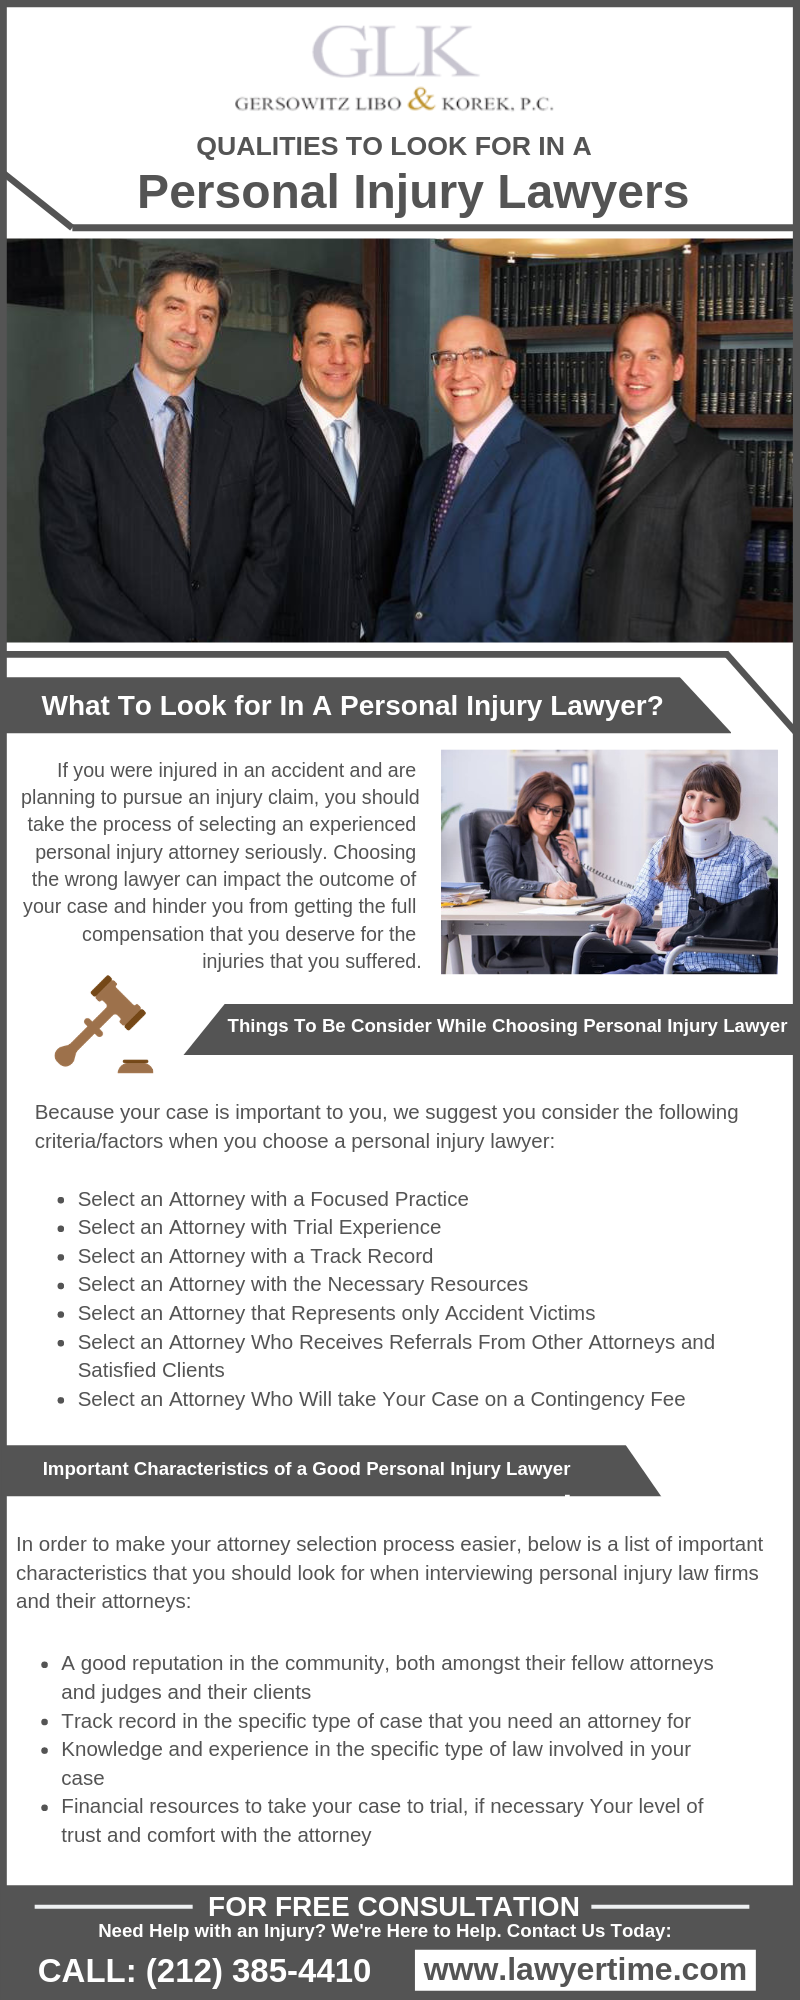 Things To Consider When Choosing A Personal Injury Lawyer A Law